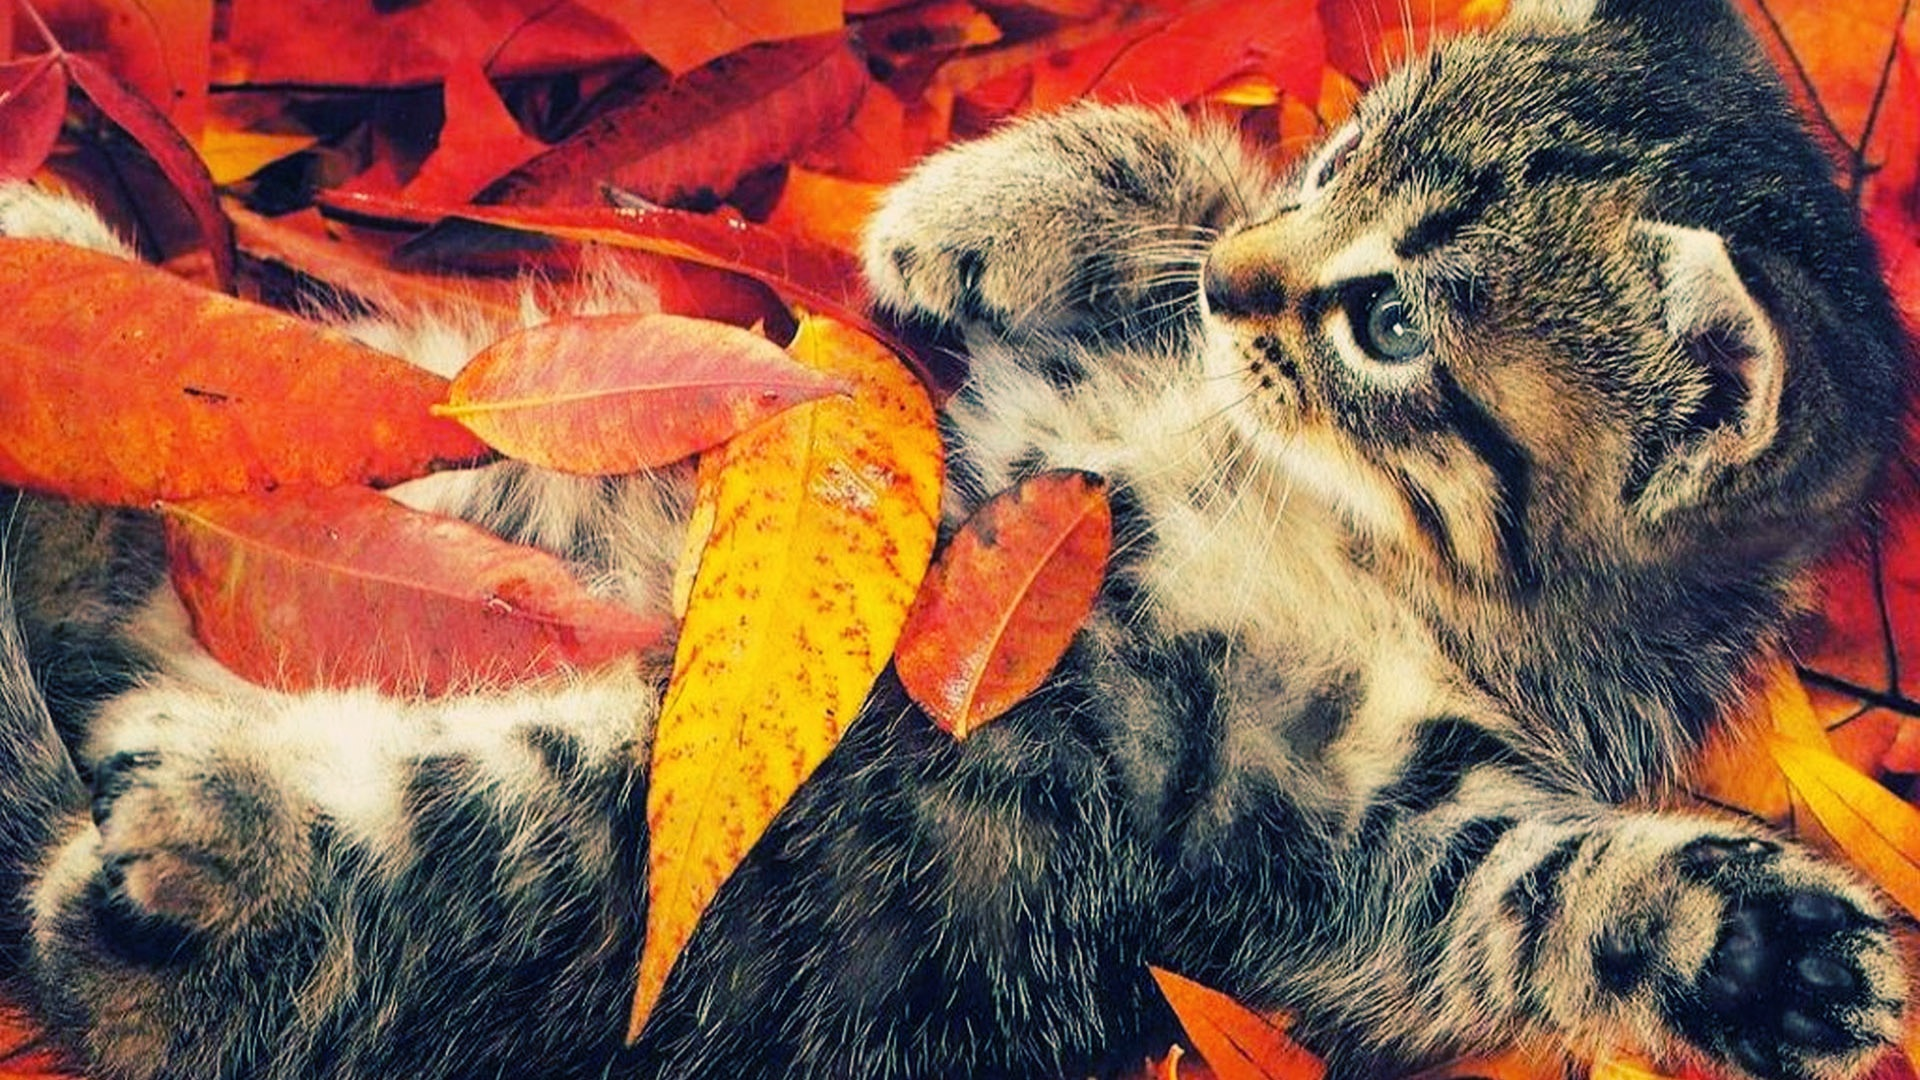 autumn wallpaper life animal wallpapers backgrounds 1920x1080 1920x1080